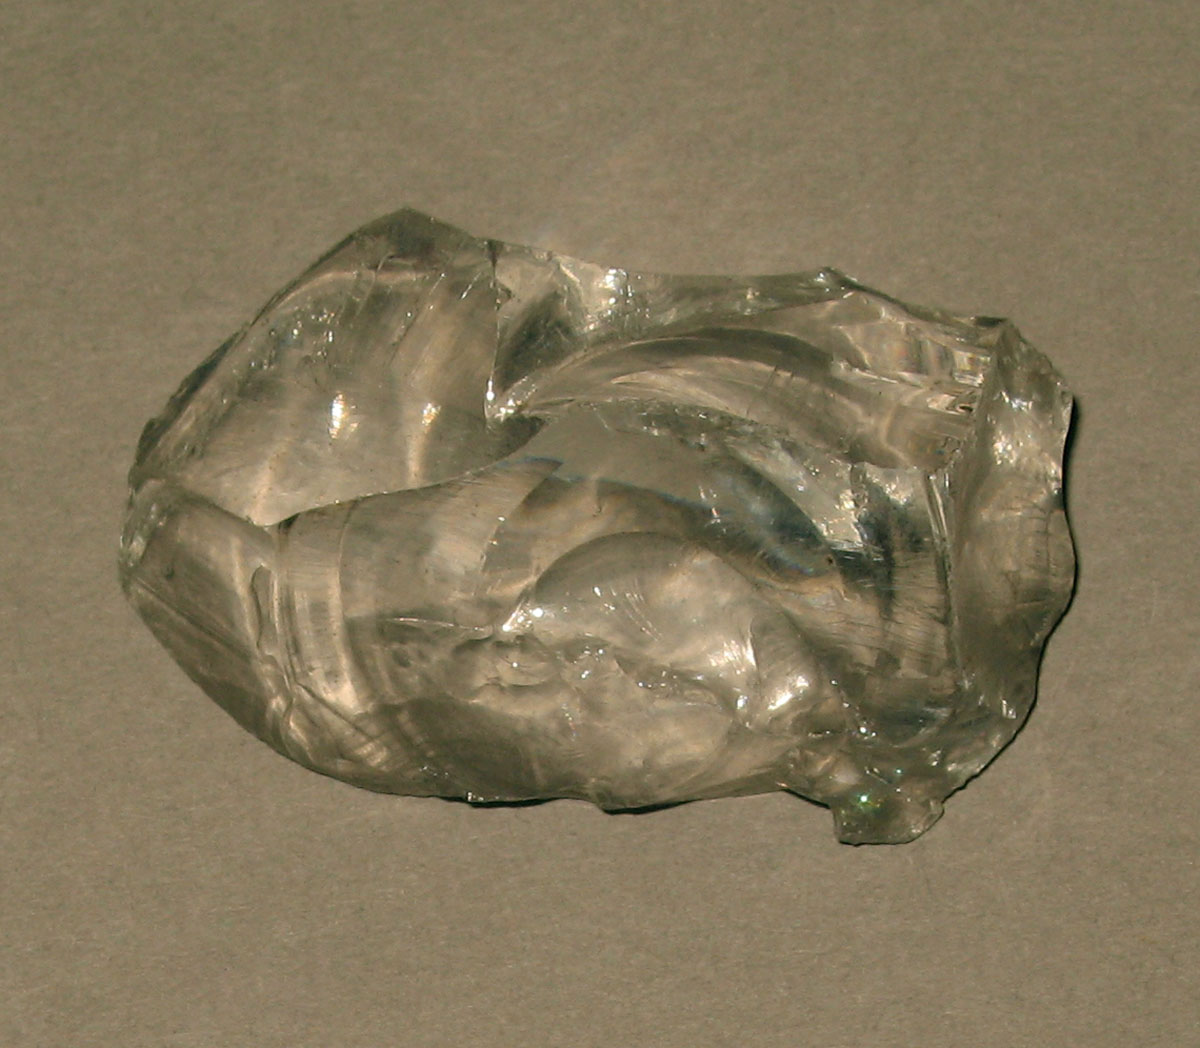 1958.0002.006.010 Glass fragment